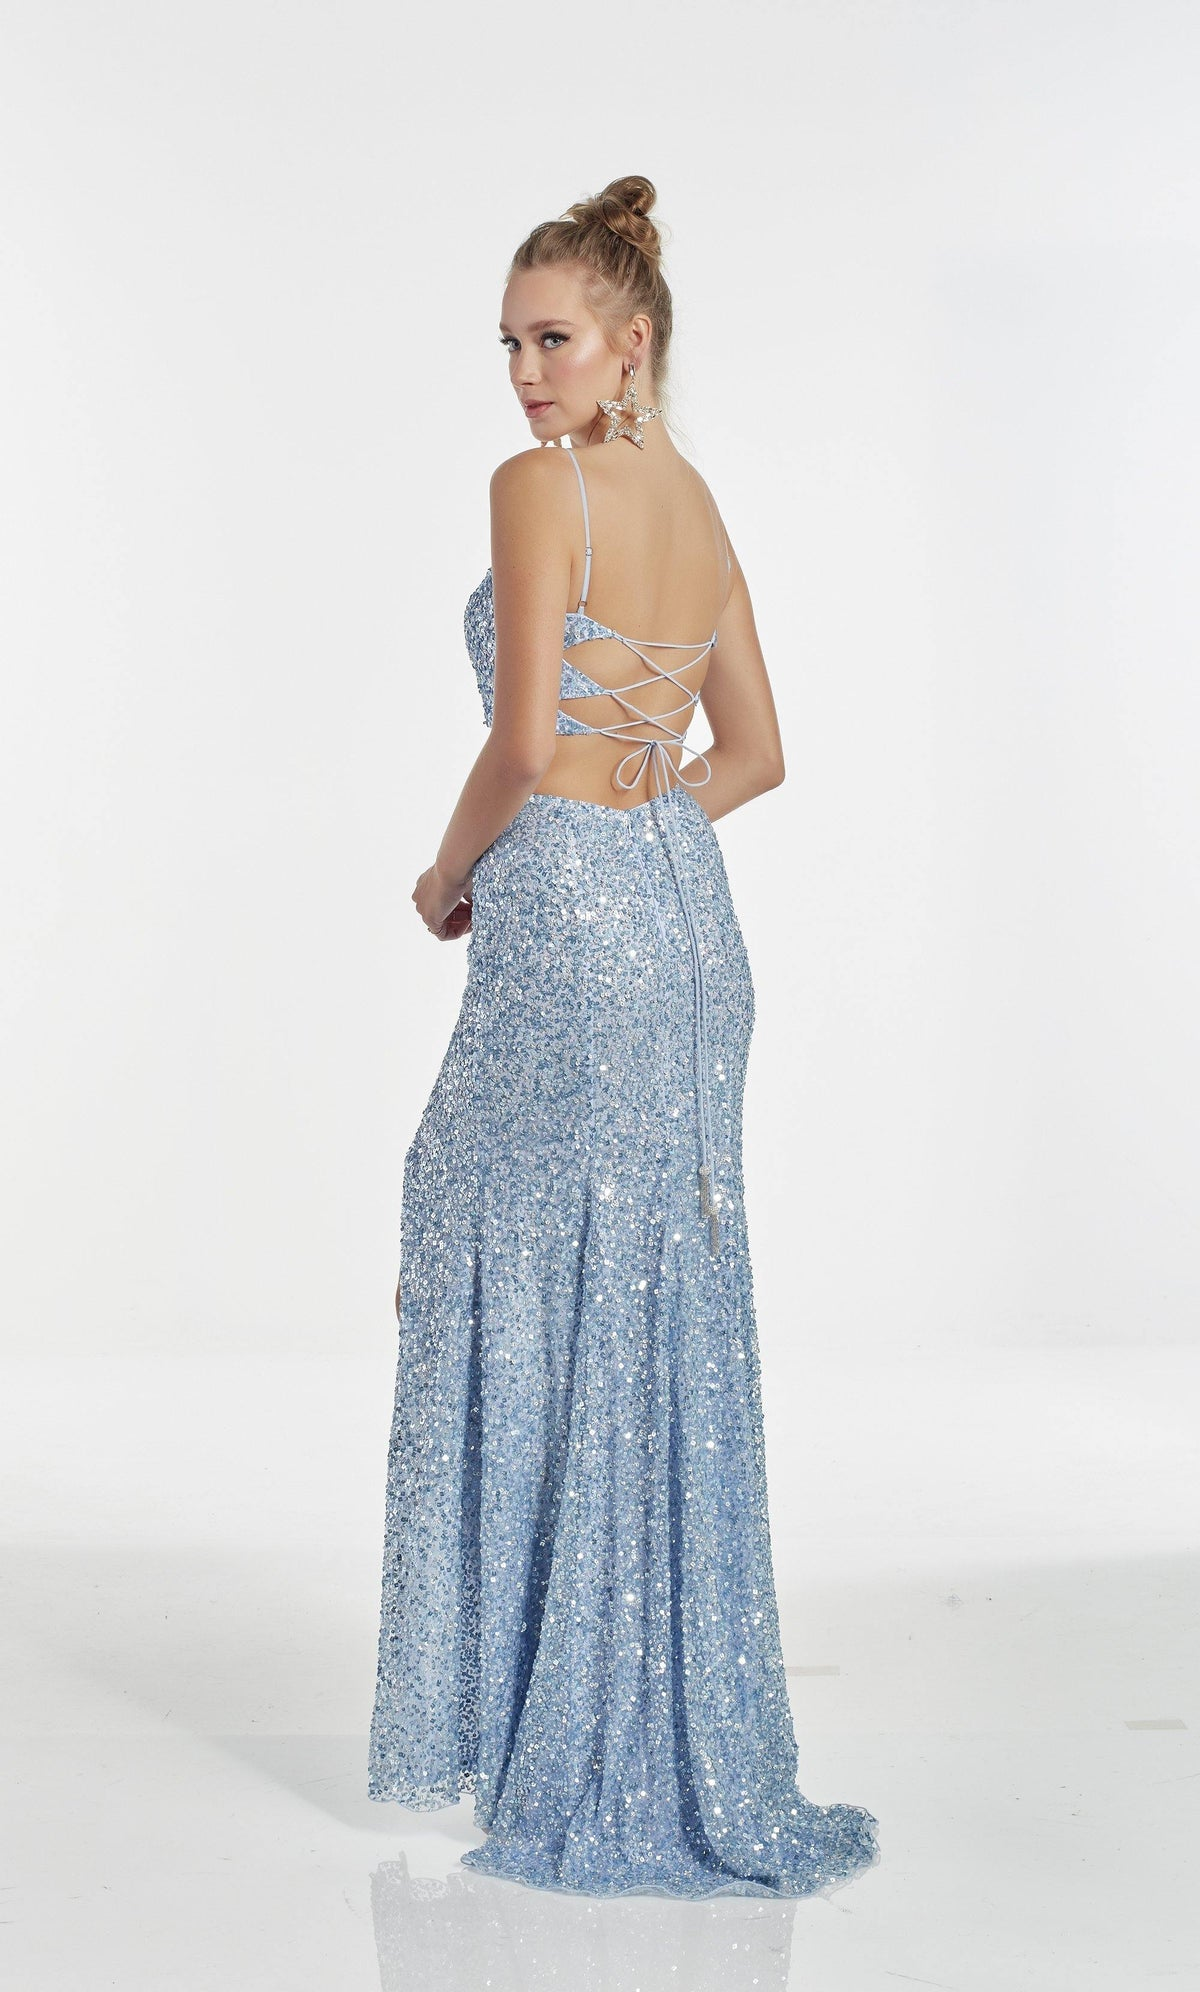 Fully beaded Light Periwinkle two piece pageant dress with a strappy back and train